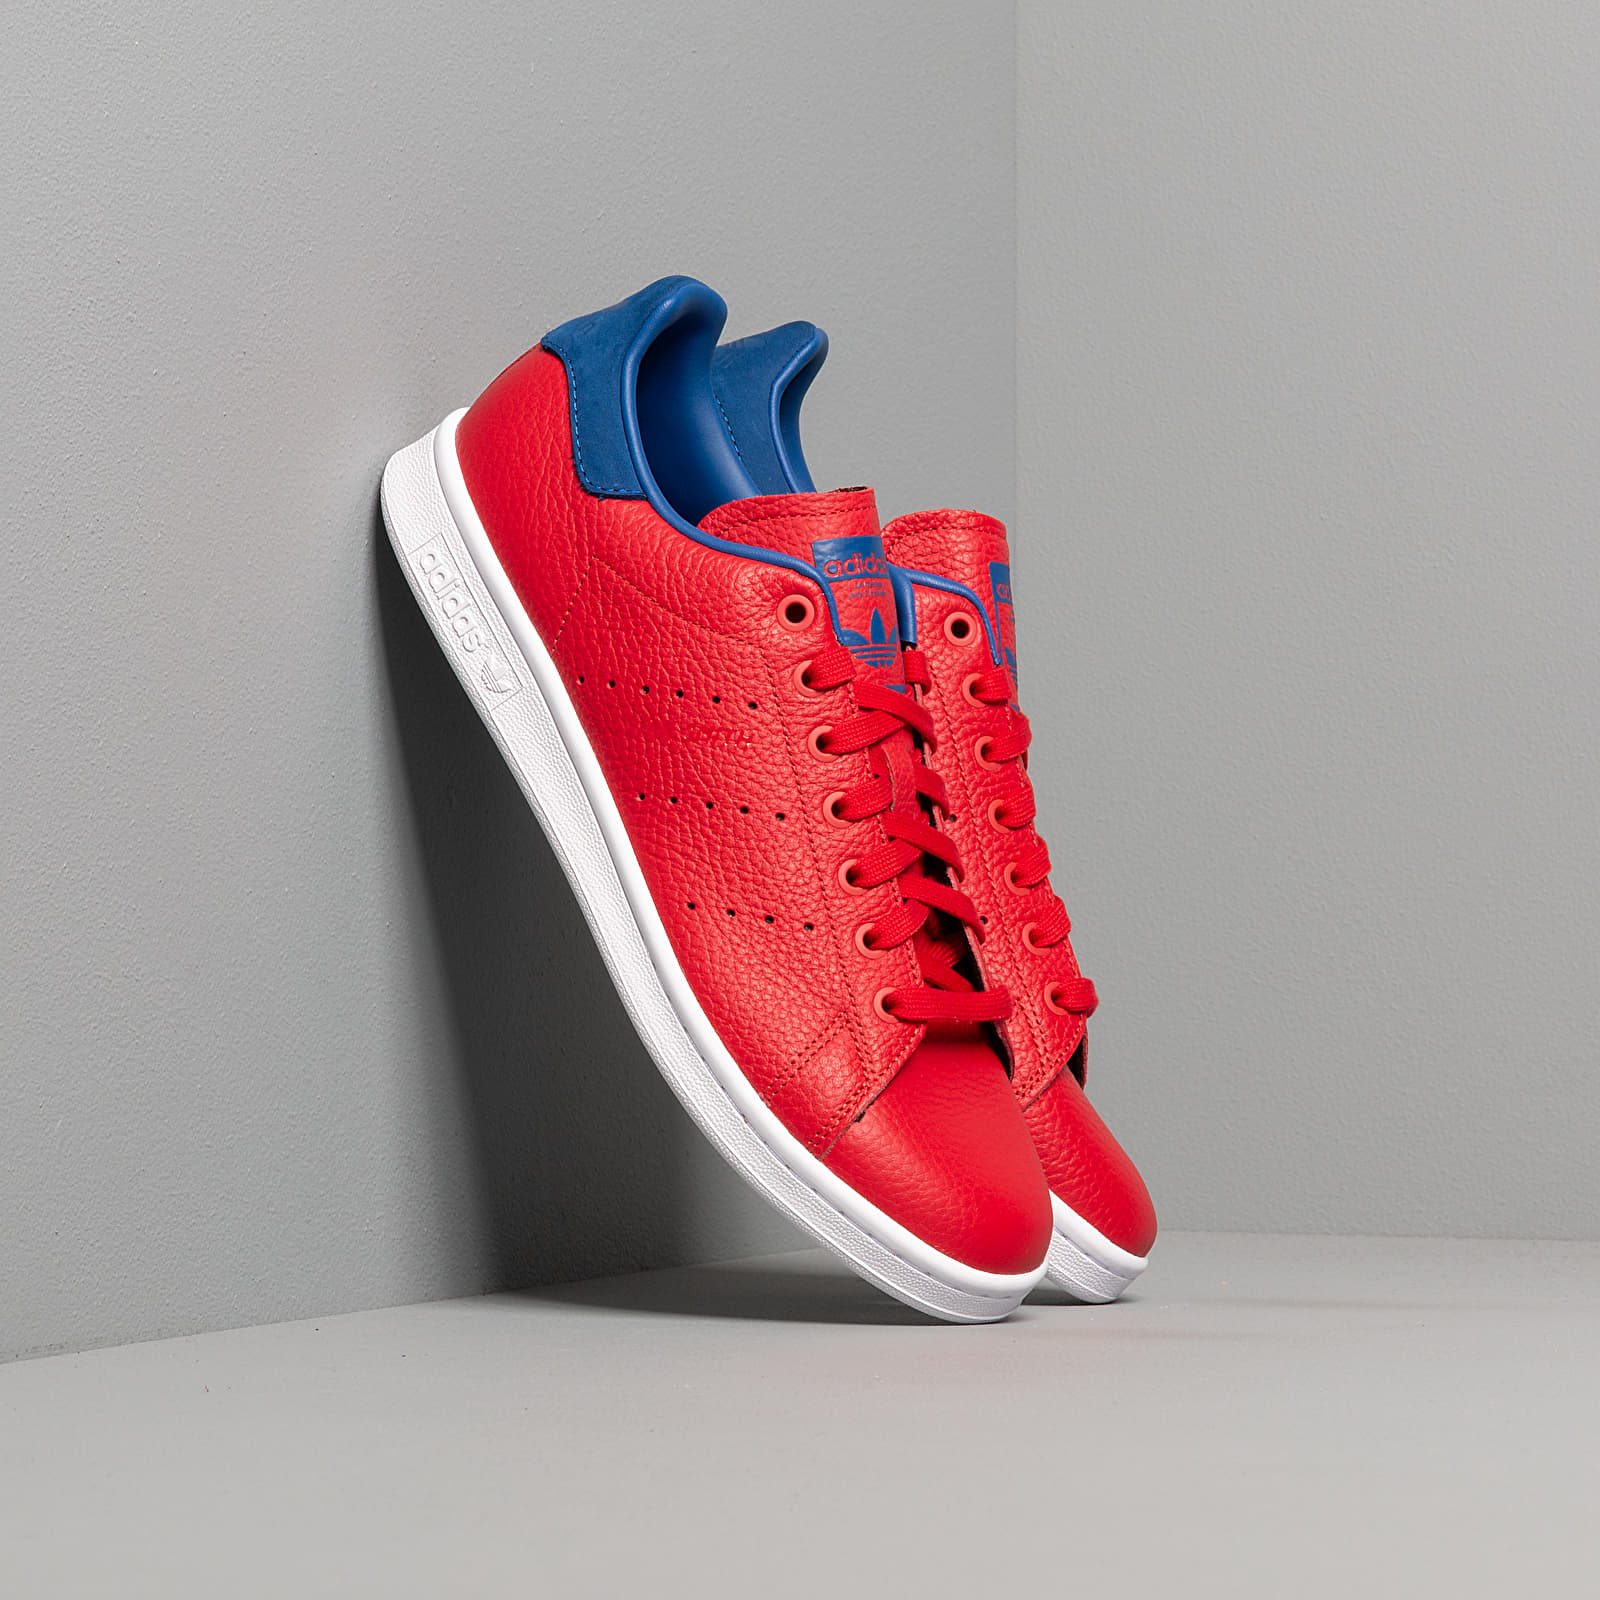 Chaussures et baskets homme adidas Stan Smith Scarlet/ Scarlet/ Core Royal